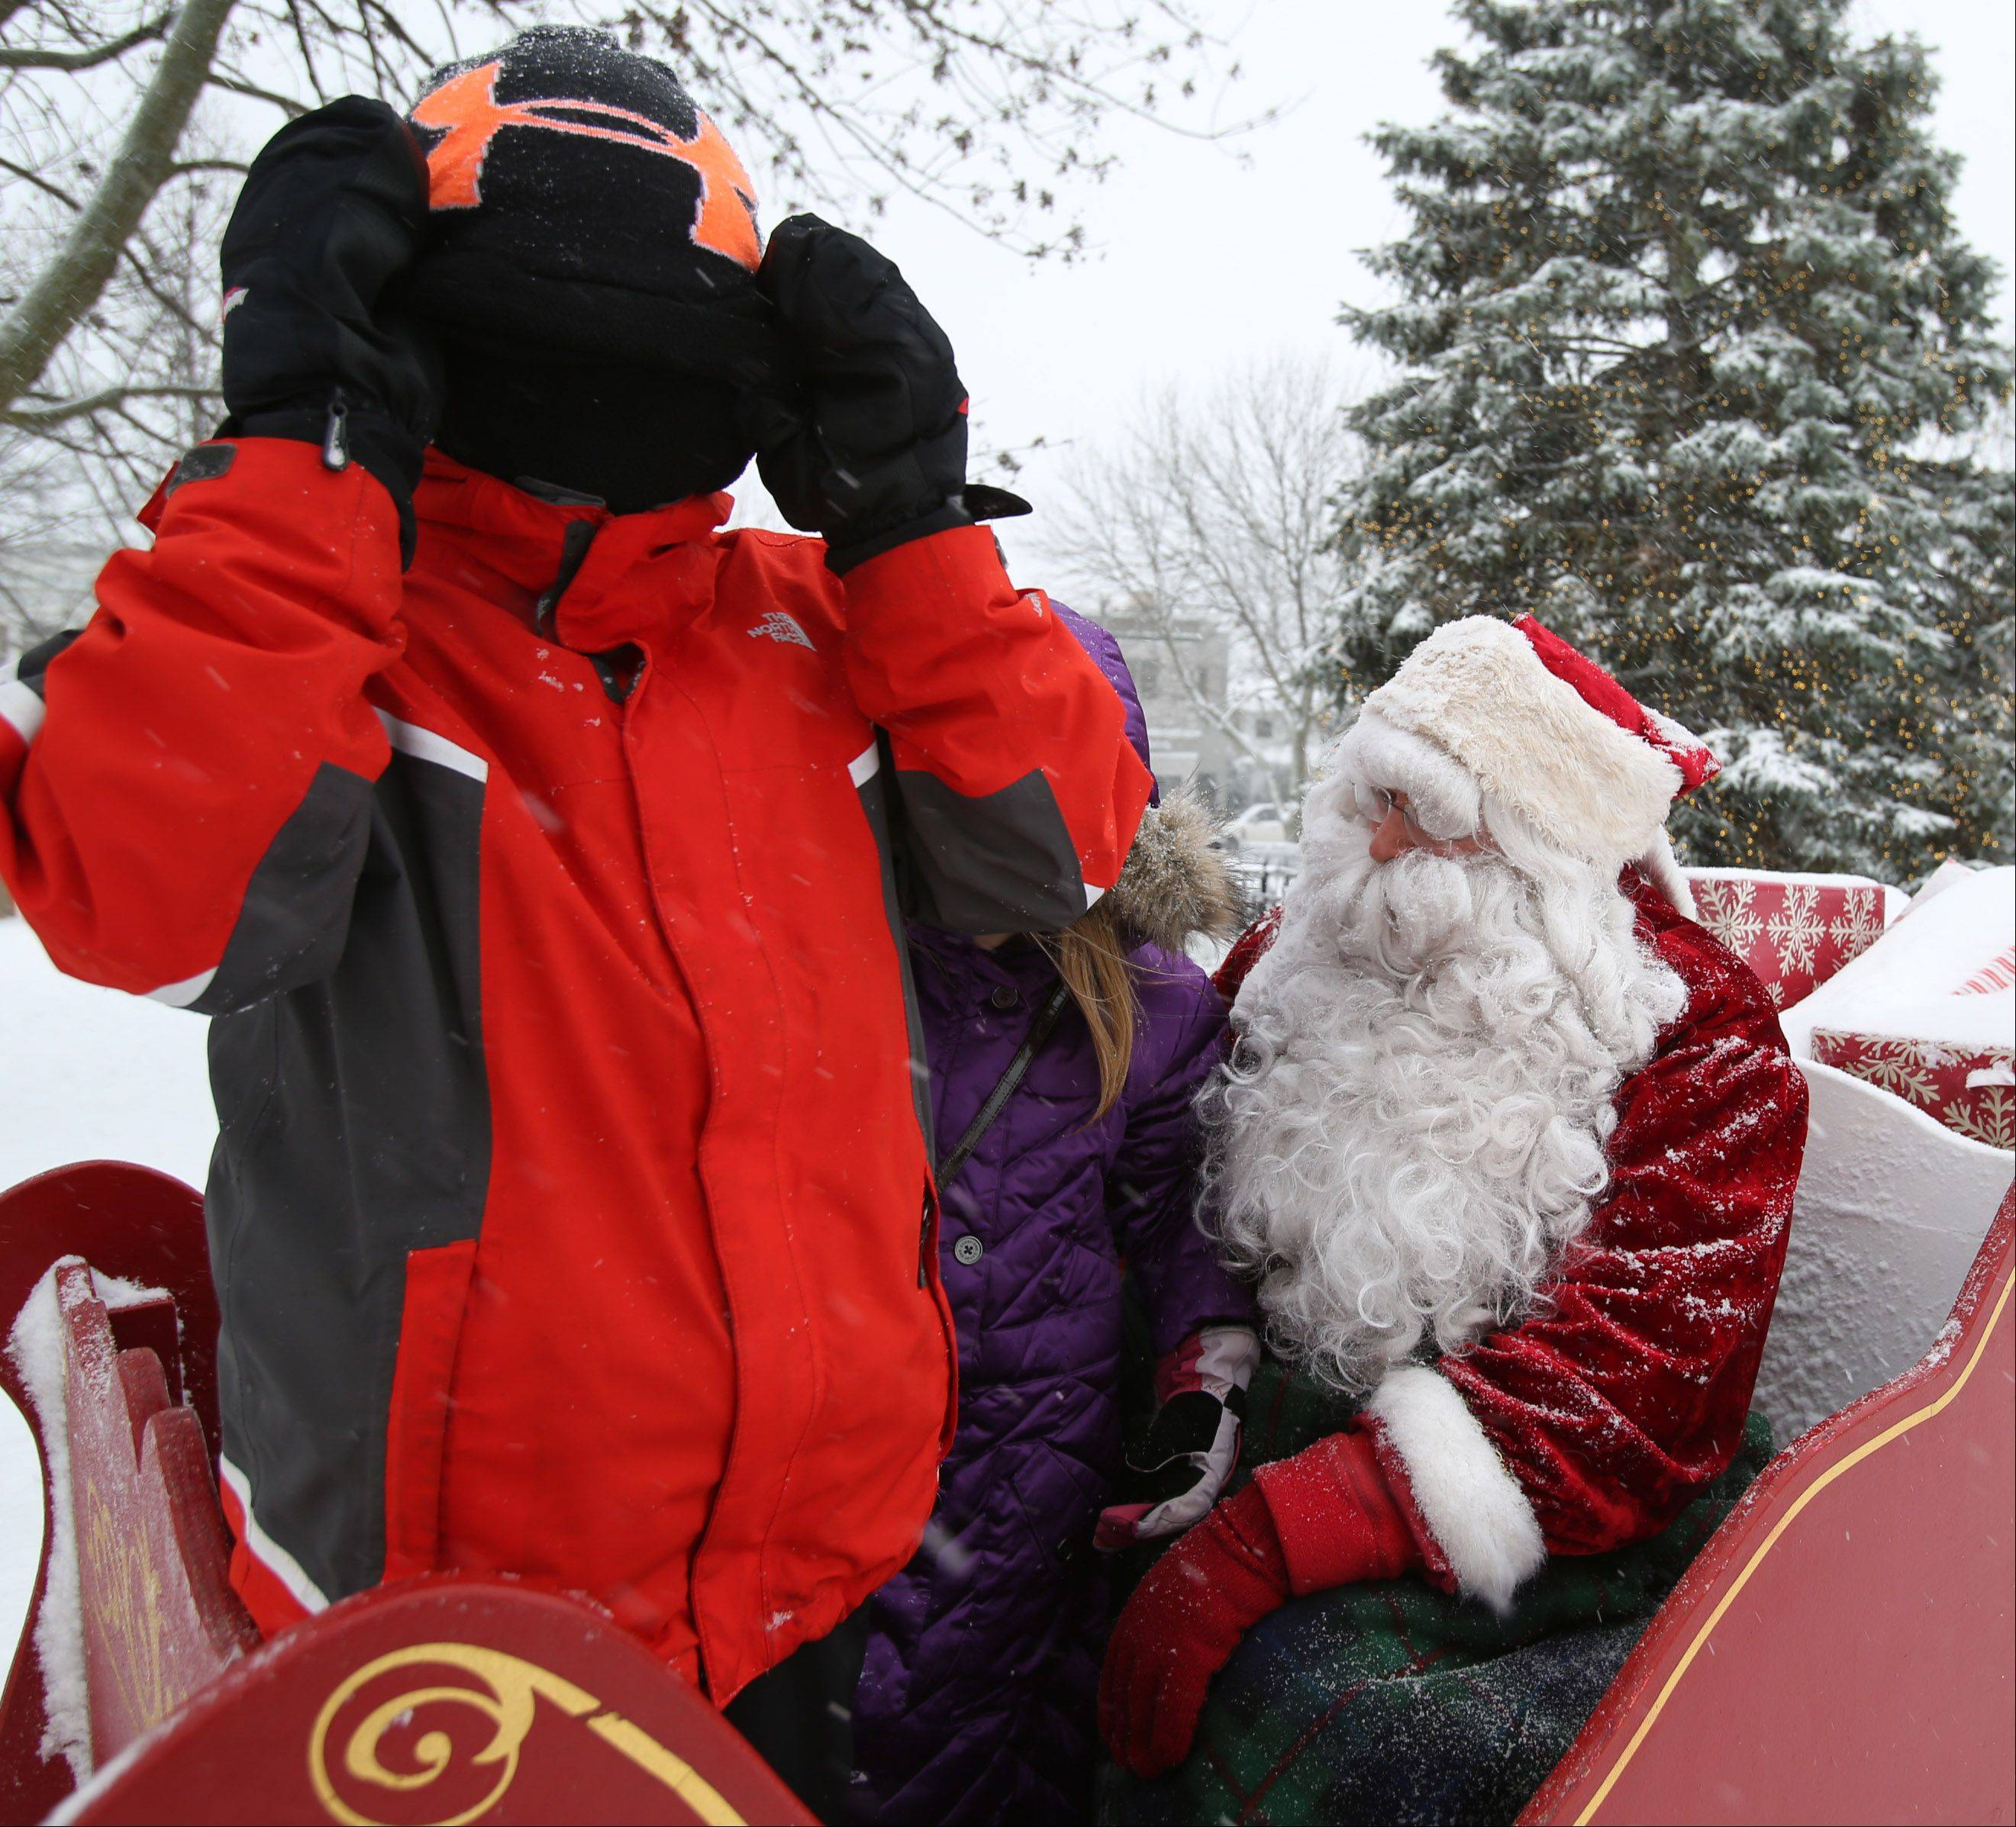 Ethan Schoenfeld, 9, covers his face, due to blowing snow, as his sister Teagan Schoenfeld, 7, both of Libertyville goes through her wish list as she visits with Santa Claus in Cook Park during Dickens of a Holiday Festival on Saturday in Libertyville.